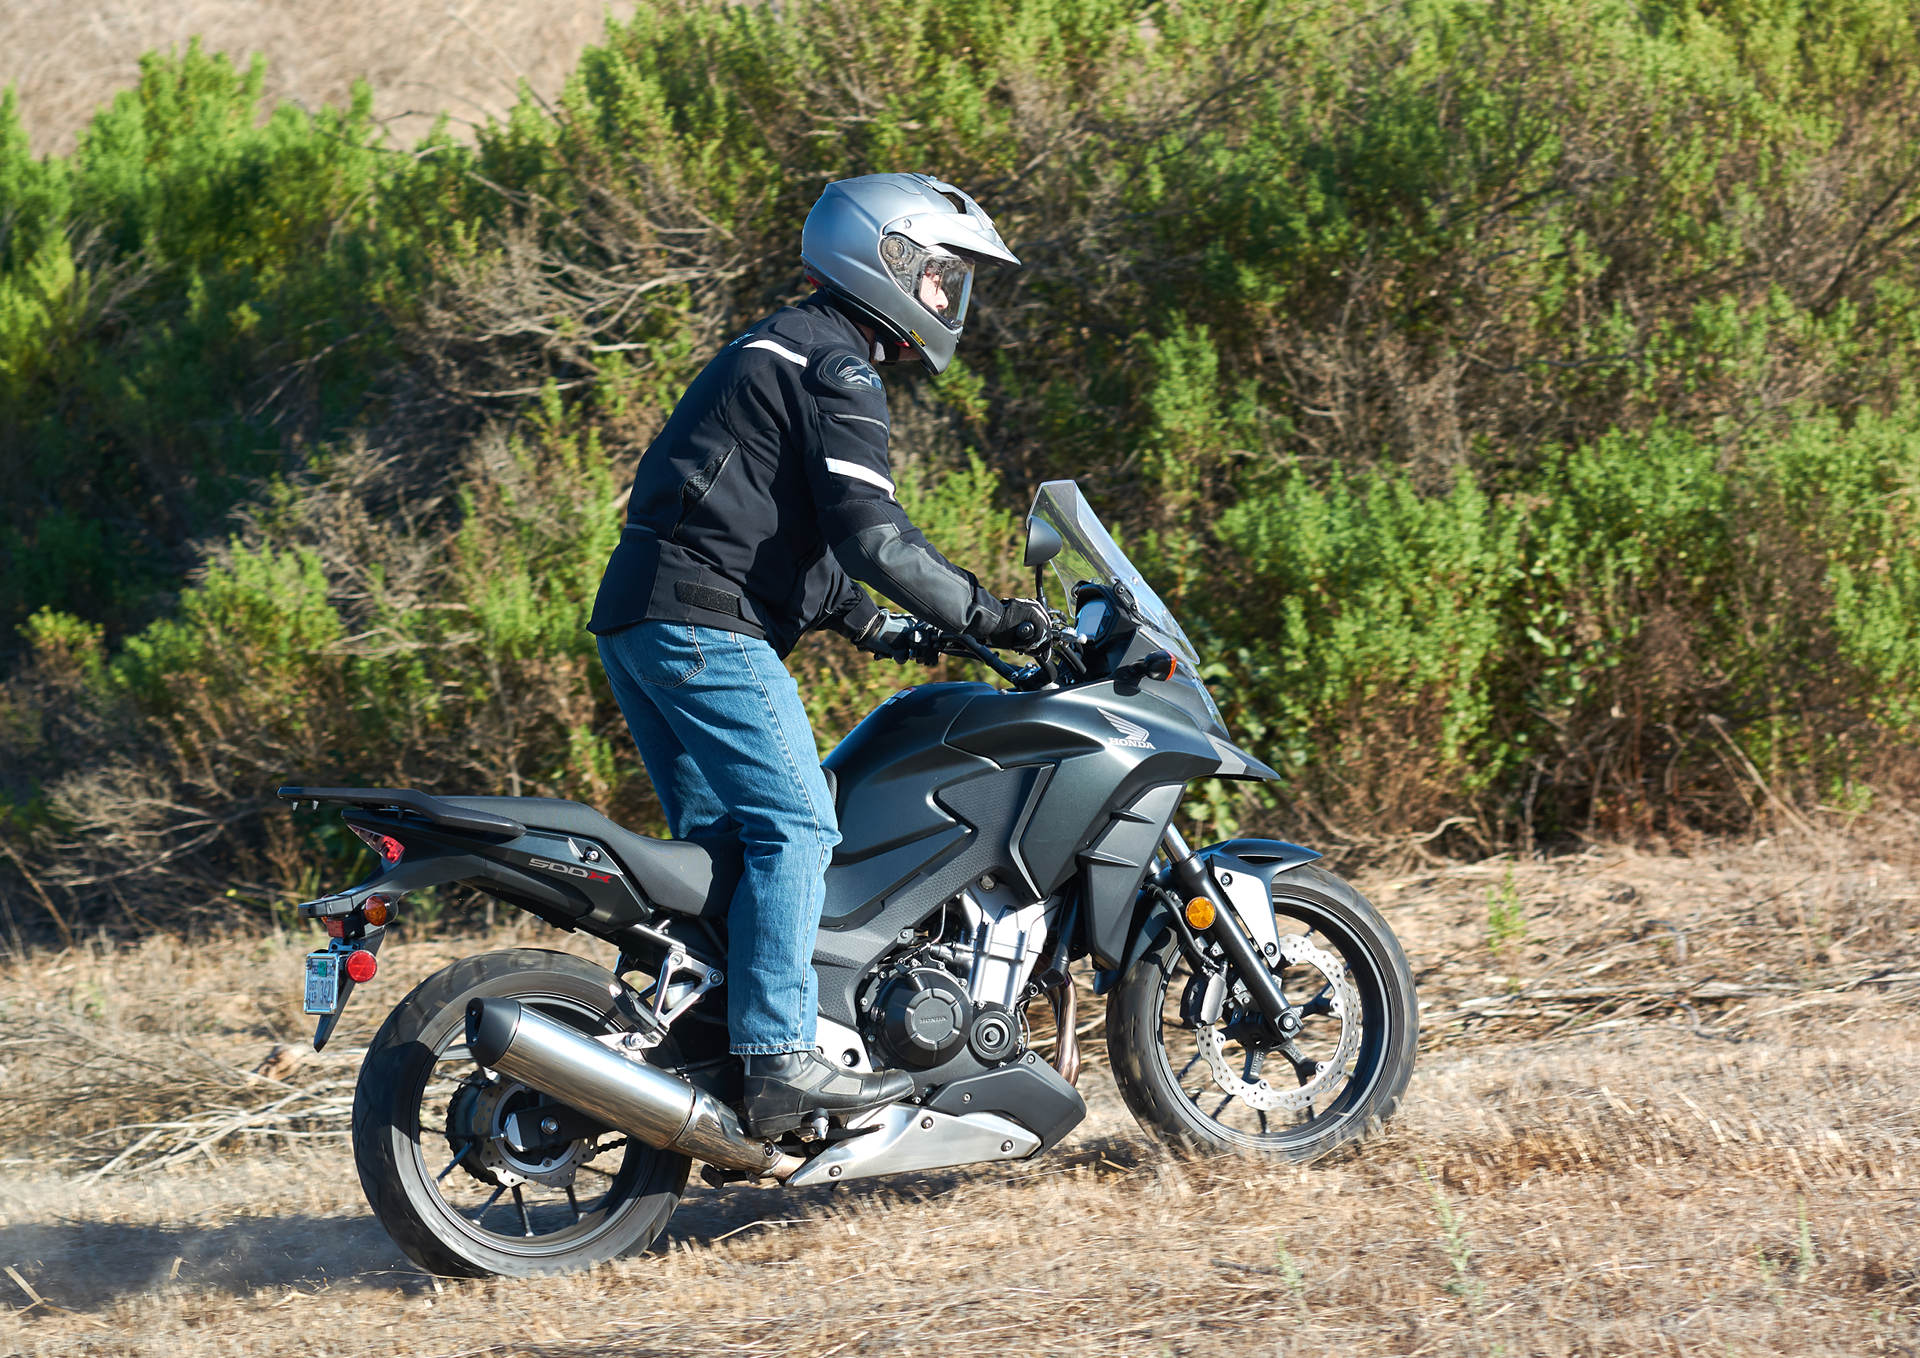 Honda cbx 500 review - The 2017 Model Is Only Available In Candy Rose Red Take A Look At Honda S Web Site For Additional Details Specifications And Available Accessories